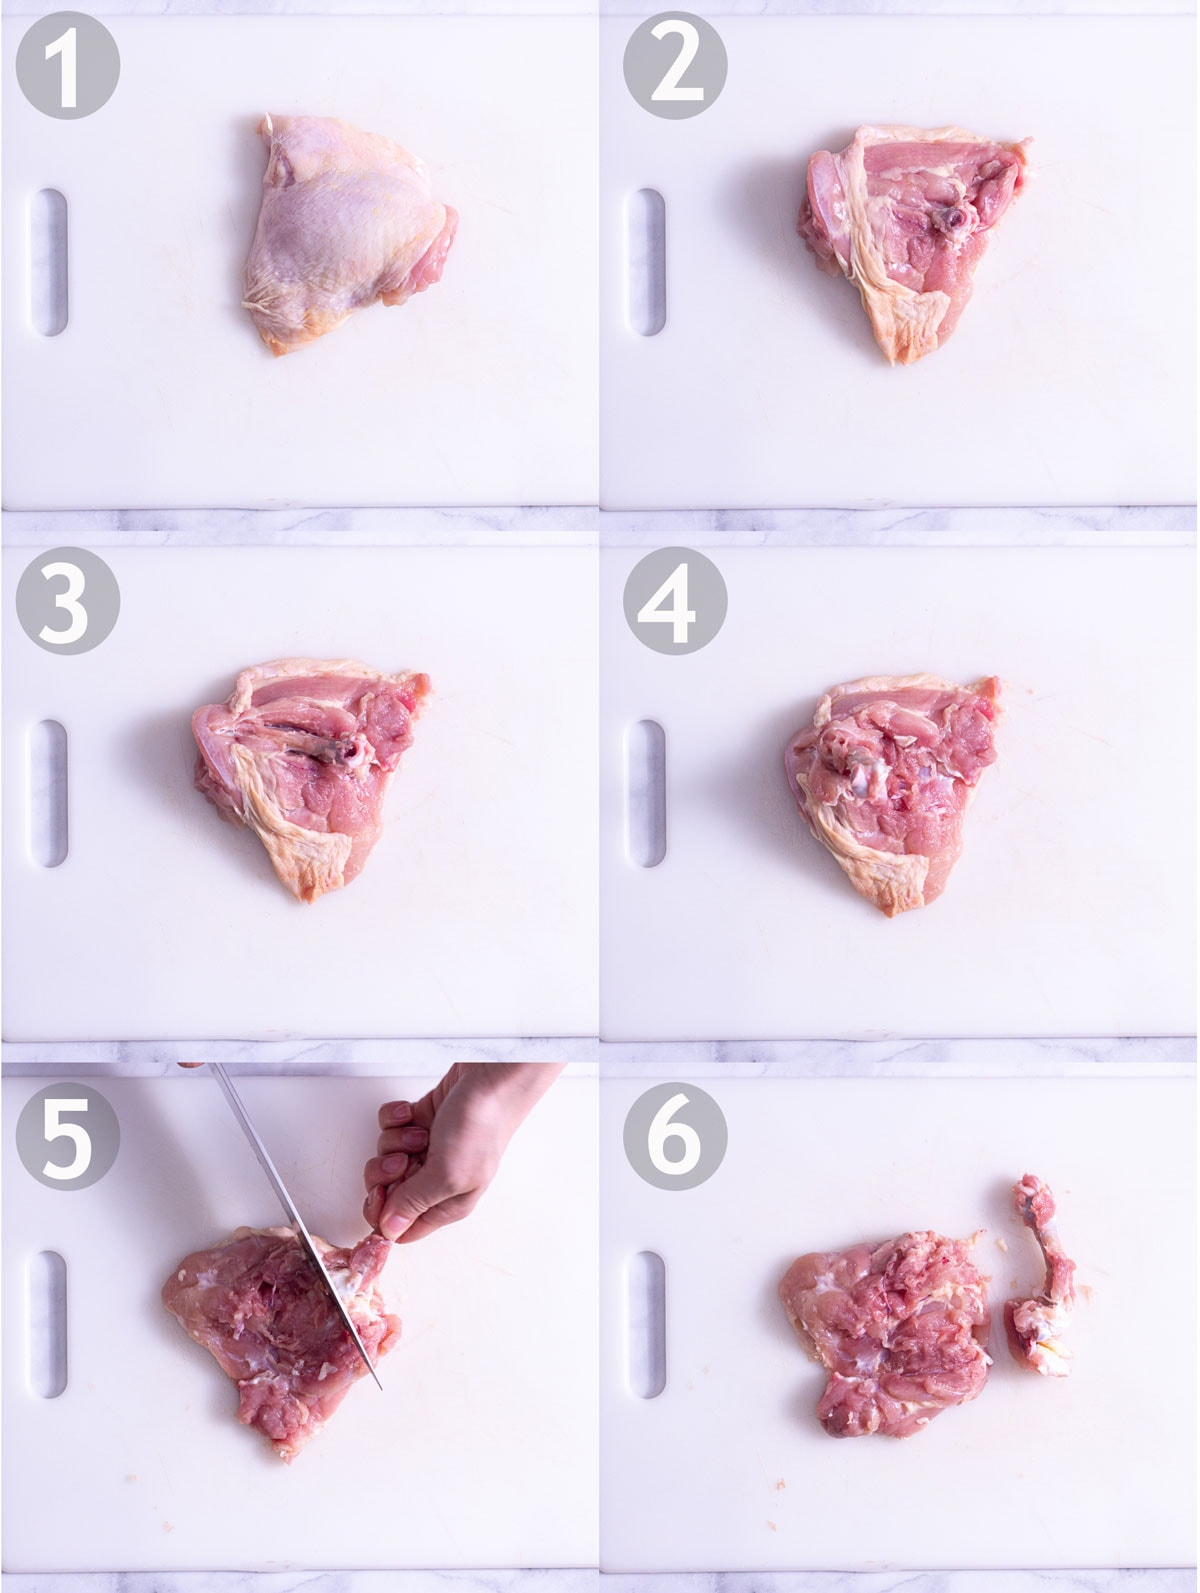 Step by step process of deboning a chicken thigh: make a slit in skin above bone, scrap flesh away from bone and cut away at joint.